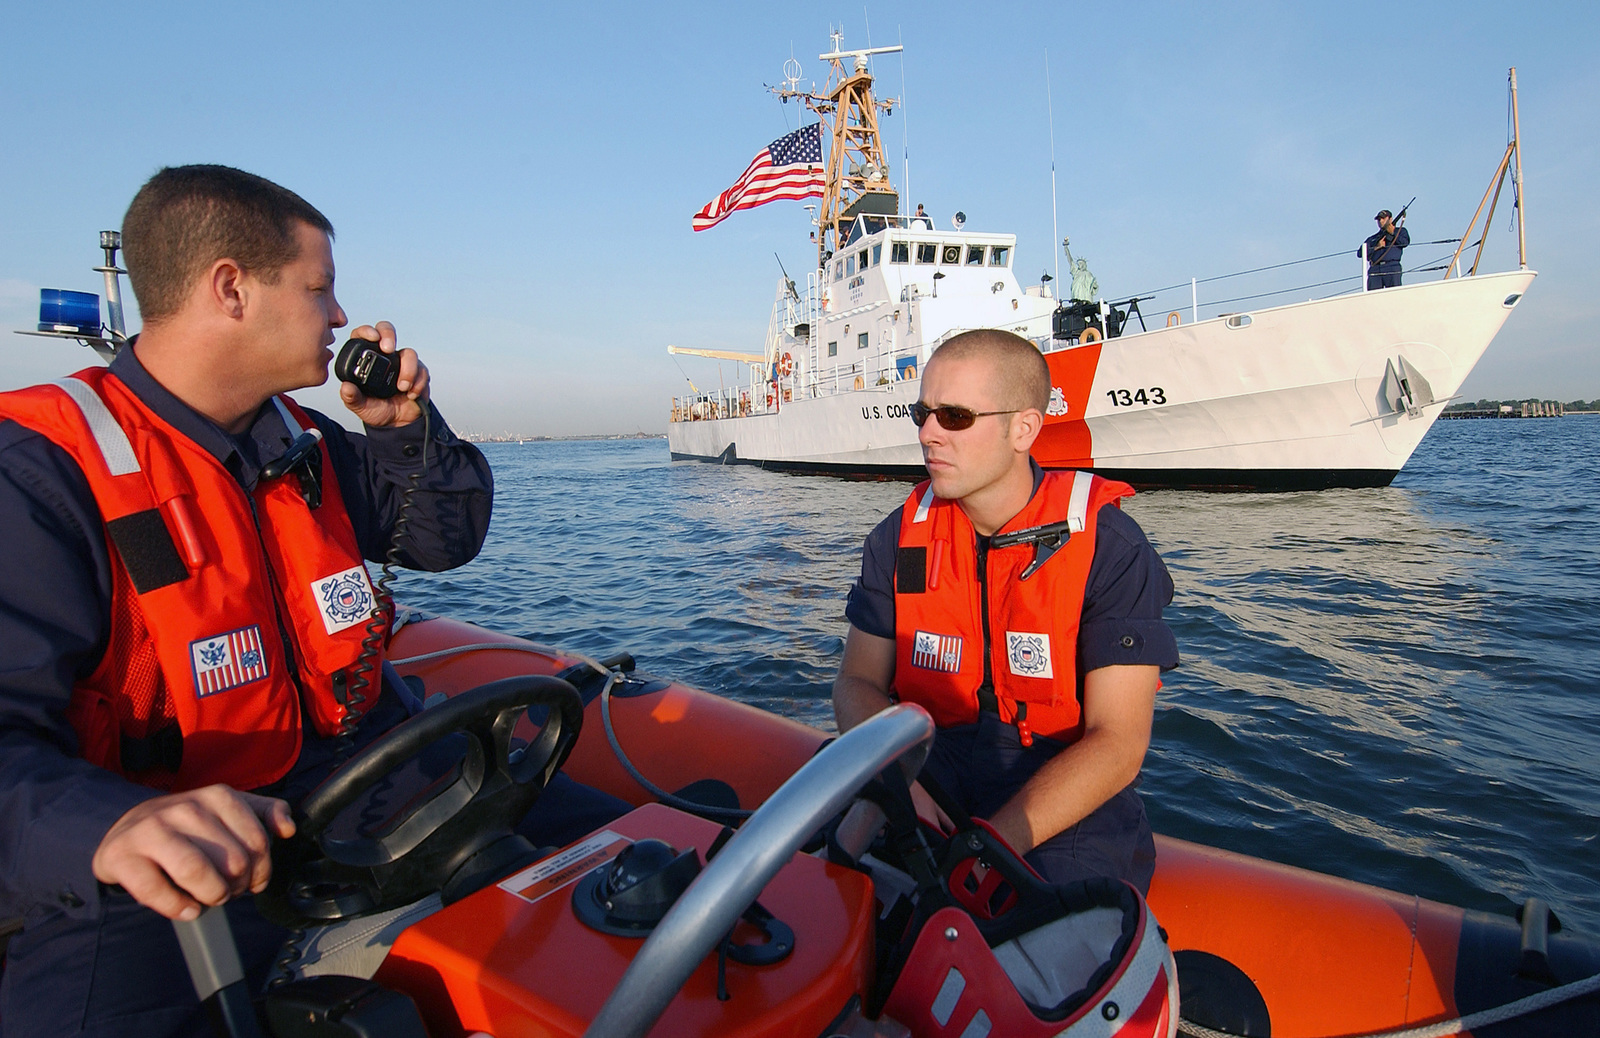 US Coast Guard (USCG) Boatswain's Mate First Class (BM1) William Lappin (left) and SEAMAN (SN) Ken Rose, make radio contact with the USCG Island Class; Patrol Craft, BAINBRIDGE ISLAND (WPB) 1343), while patrolling the New York Harbor aboard a Rigid Hull Inflatable Boat (RHIB), during a homeland security mission